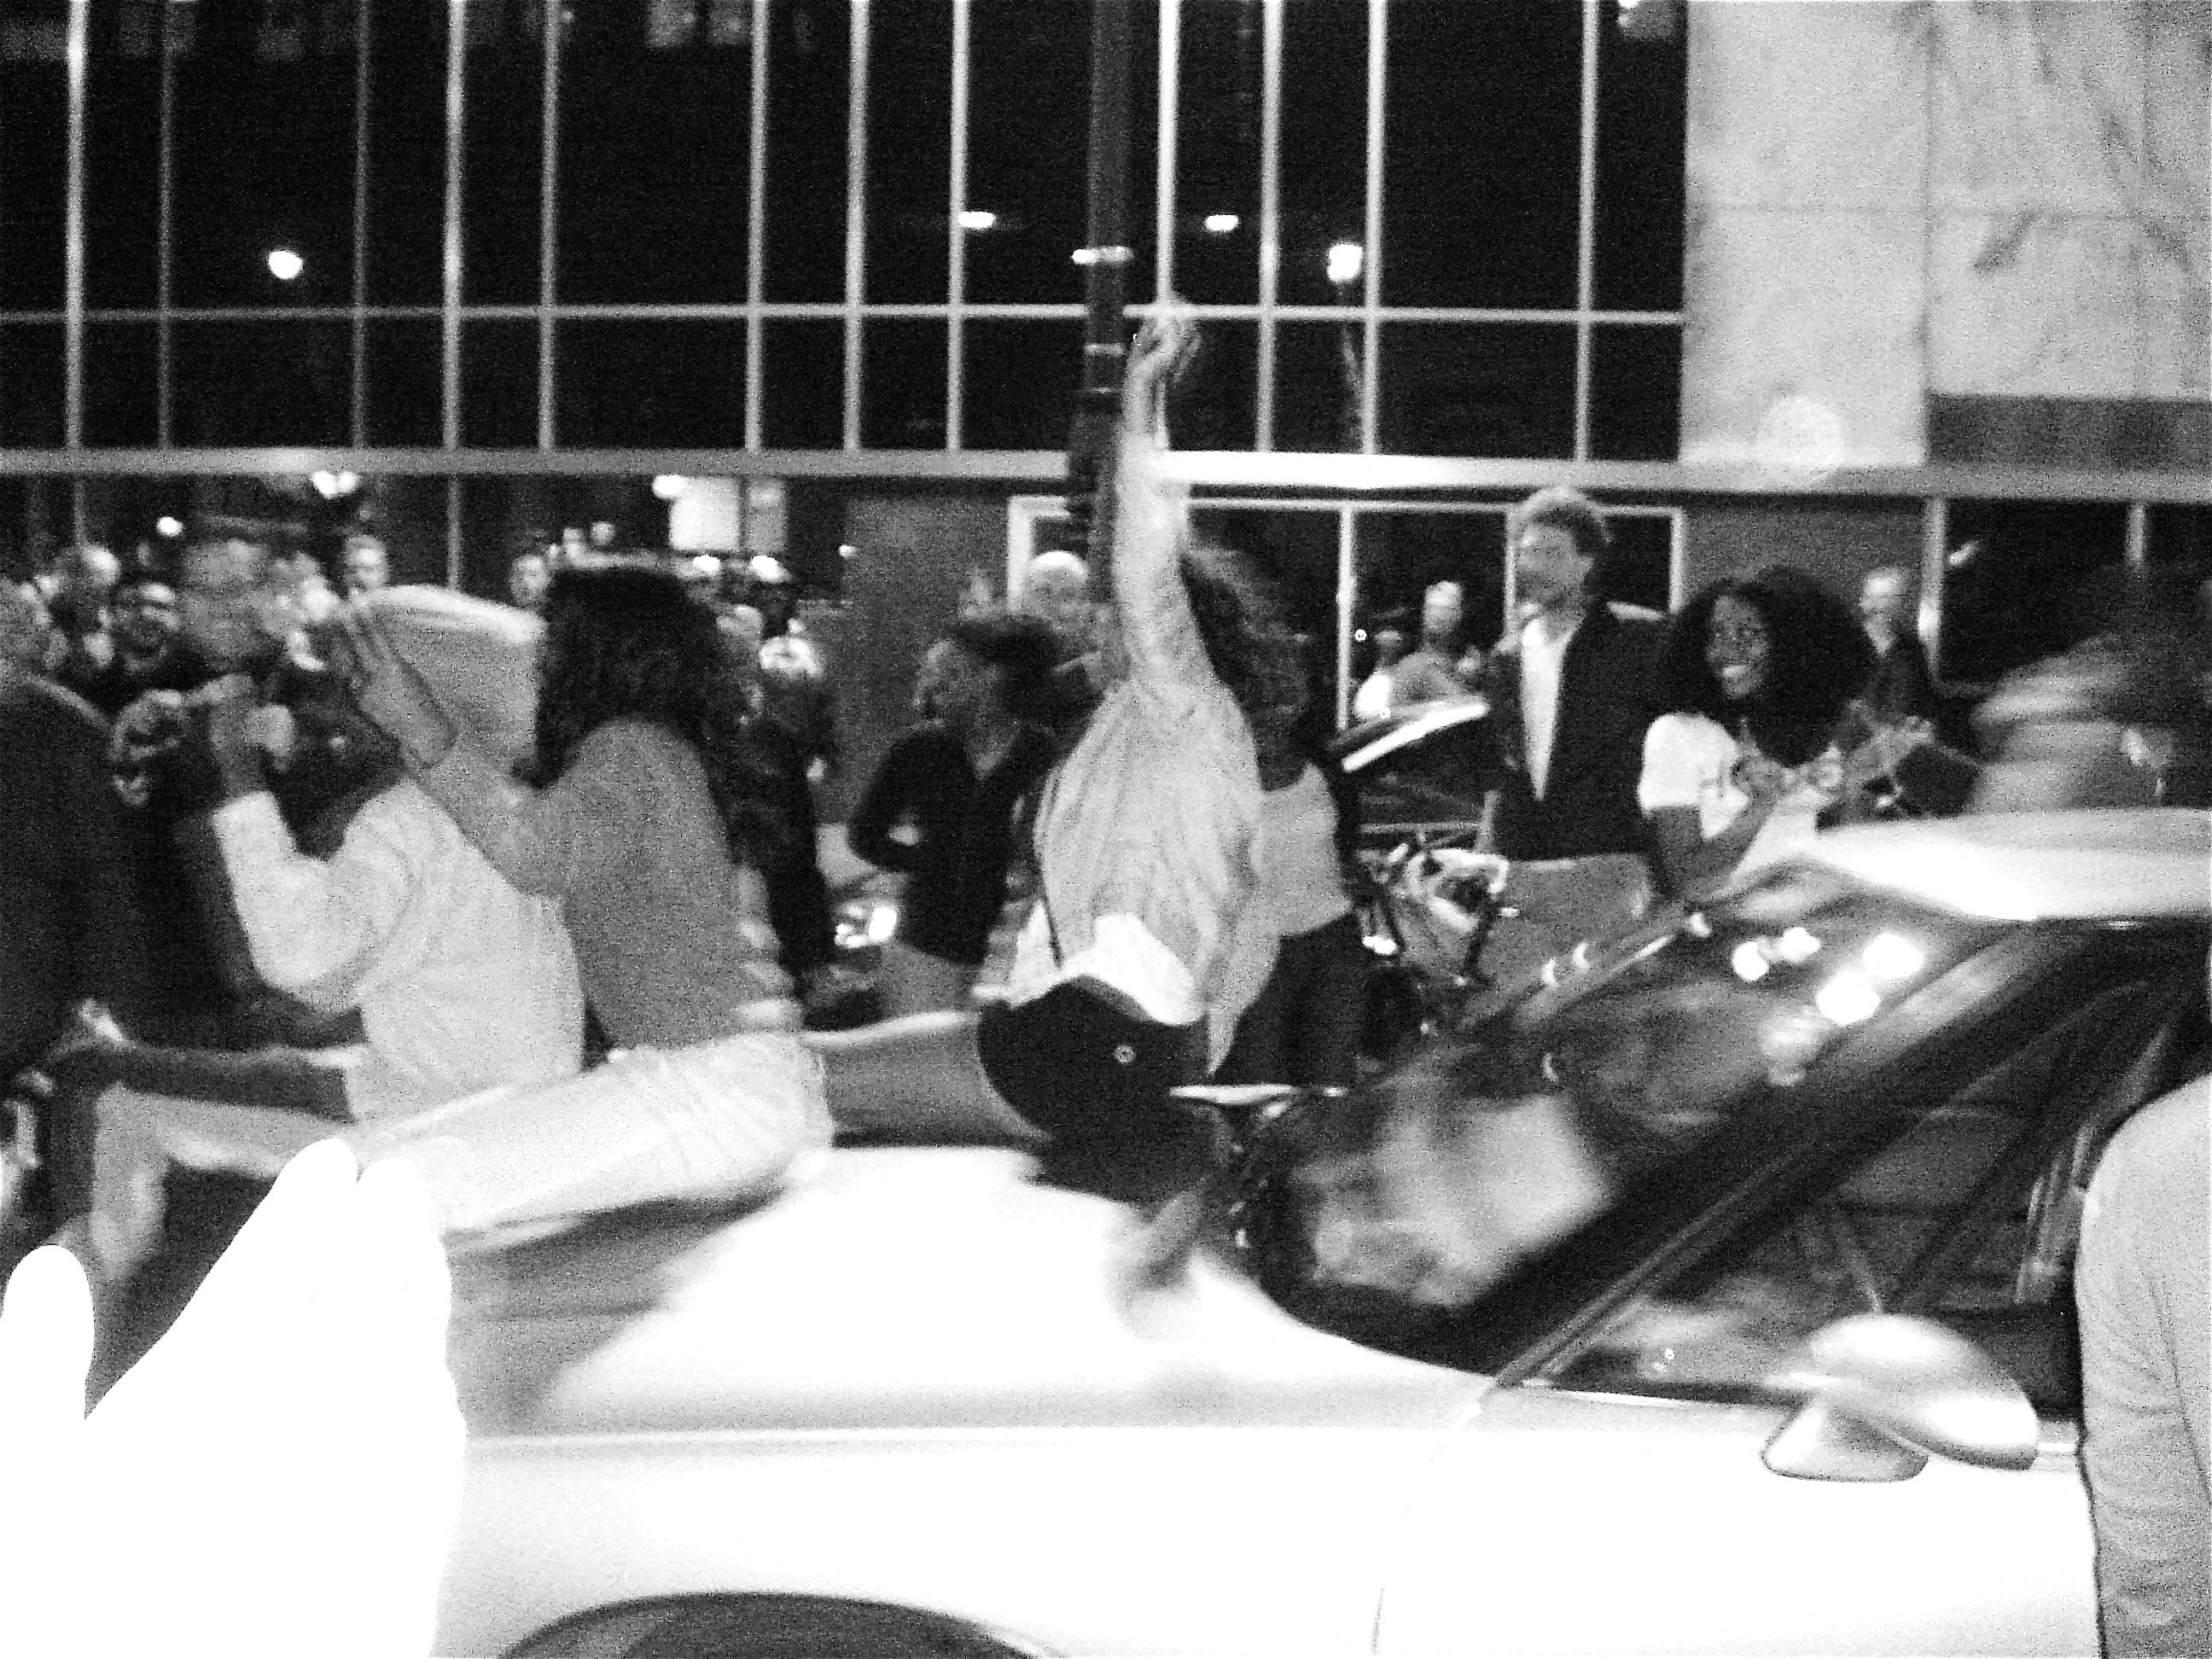 A Collective Exhale - Moments After - Election Night Philadelphia